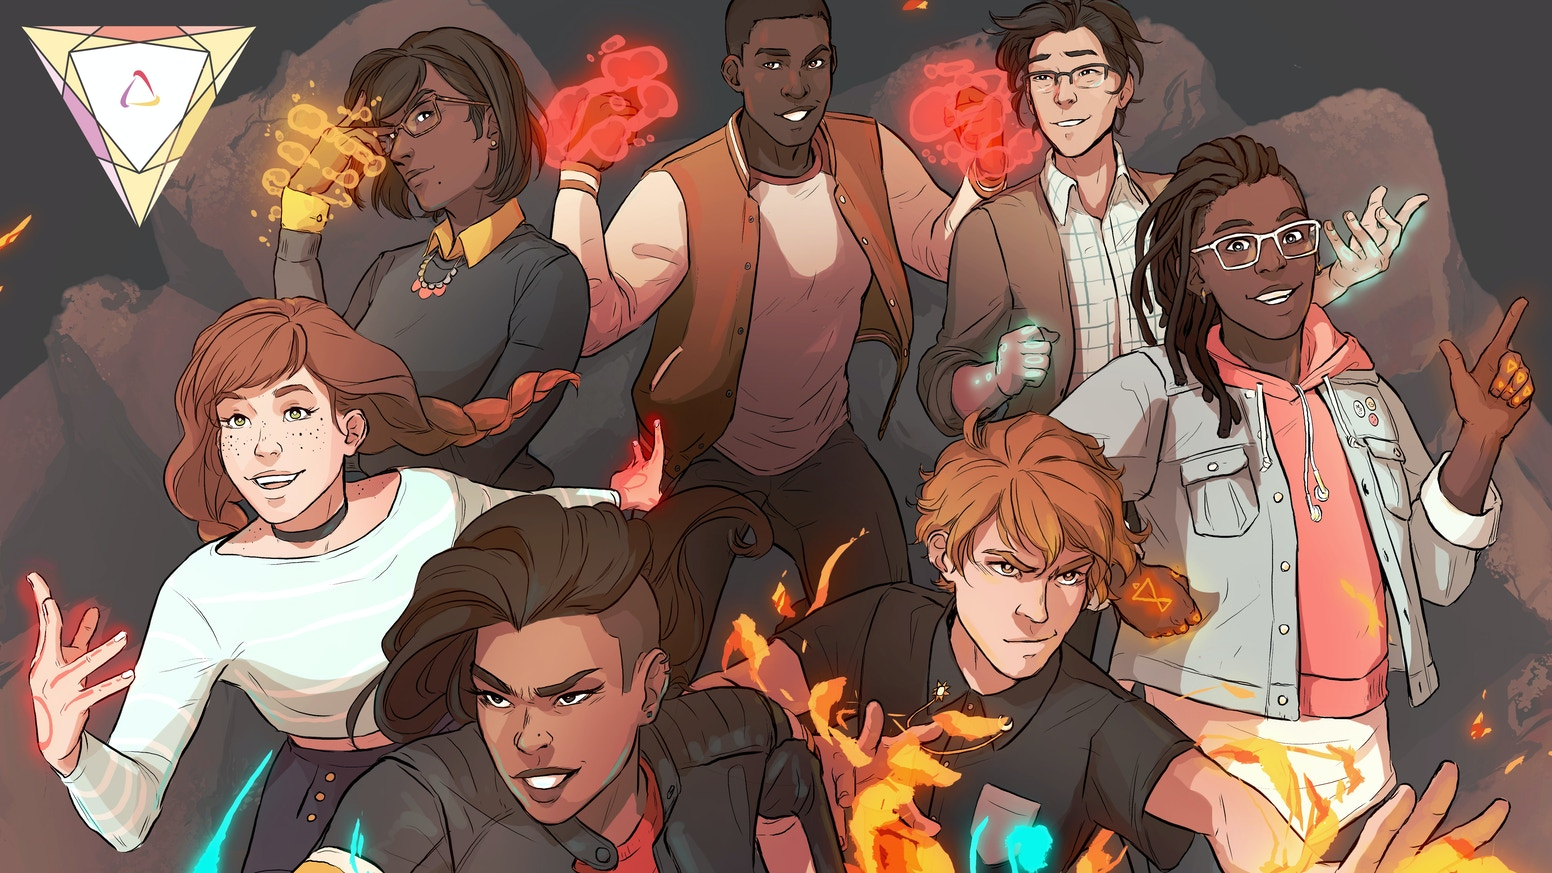 SEVENTH CIRCLE is an urban fantasy visual novel for PC and Mac from Rock Candy Games, created by Anne Camlin and Becca Farrow.